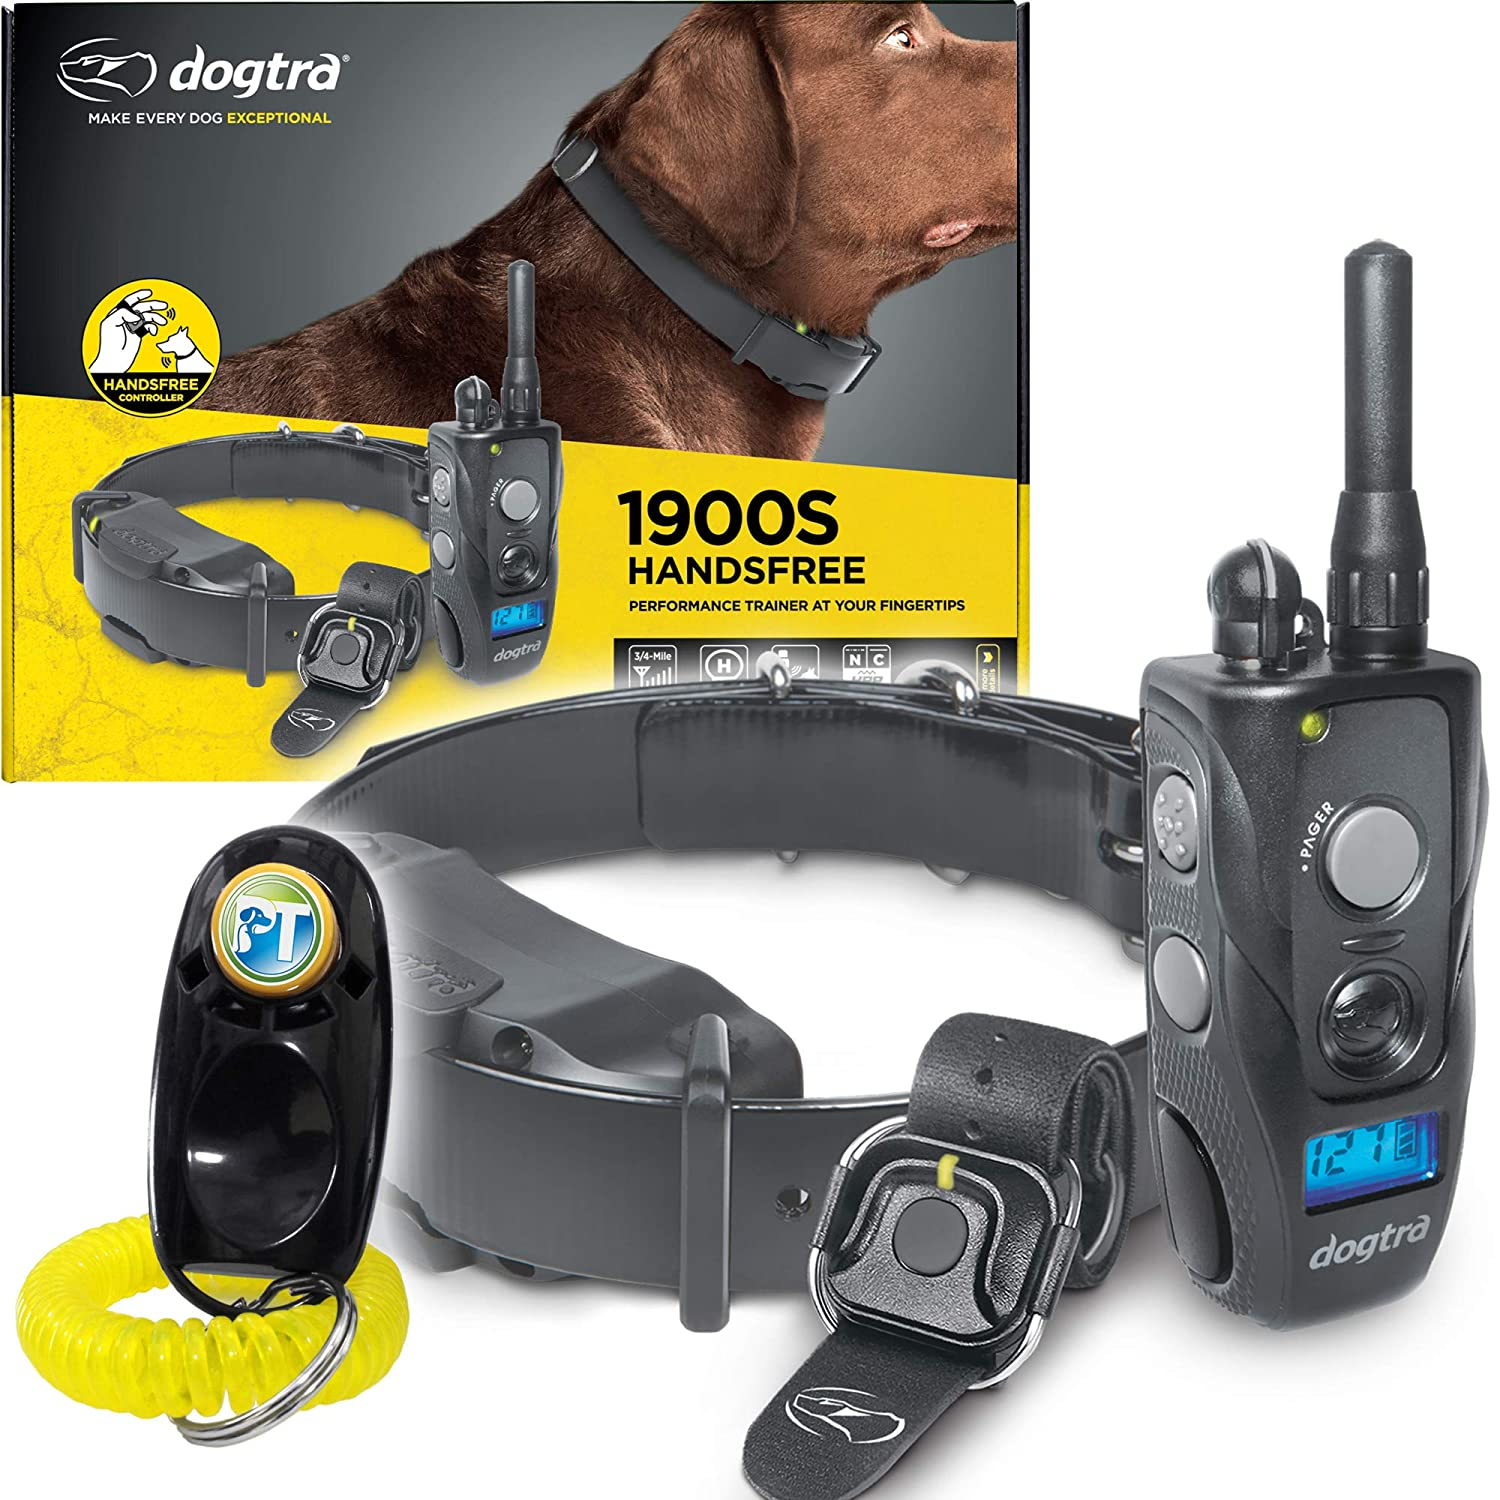 Dogtra 1900S HANDSFREE Remote Training Collar 3 4 Mile Range, Waterproof, Rechargeable, Shock, Vibration, Hands Free Remote Controller Includes PetsTEK Dog Training Clicker